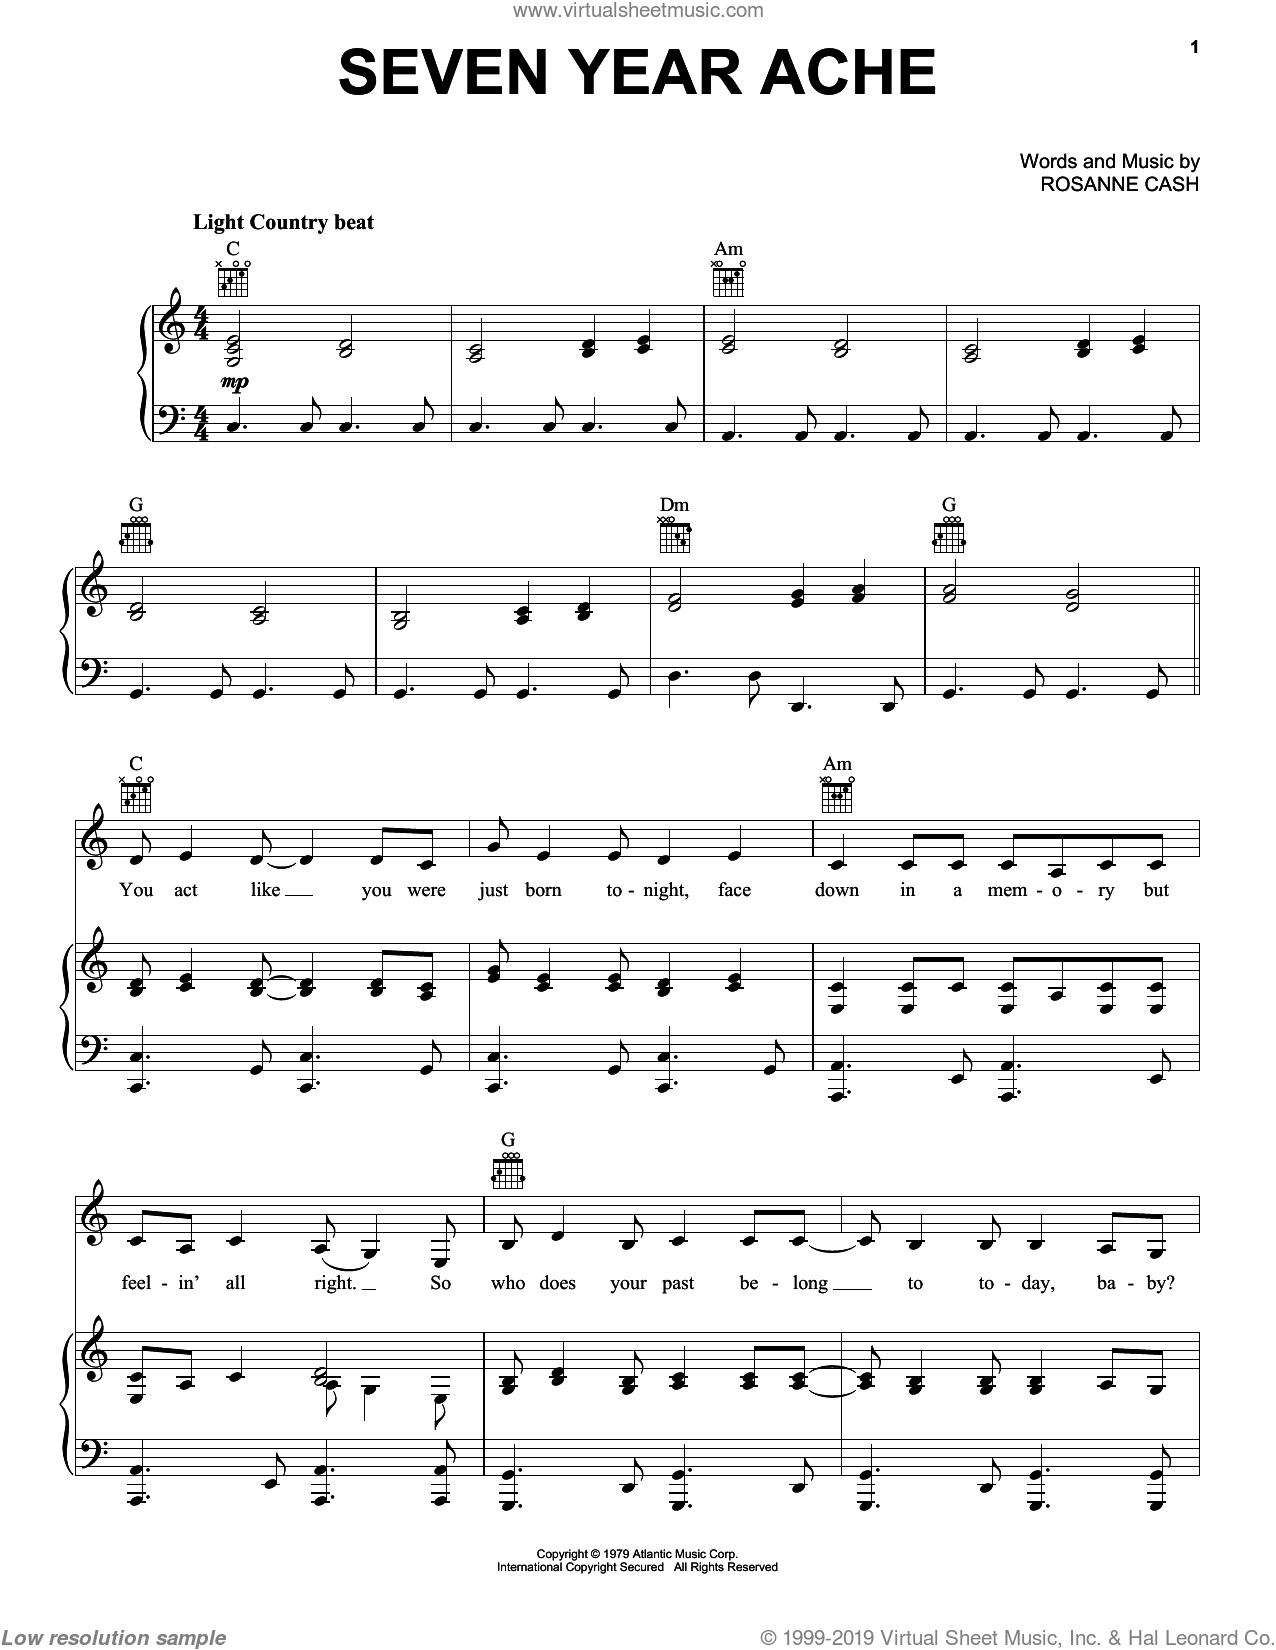 Seven Year Ache sheet music for voice, piano or guitar by Rosanne Cash, intermediate skill level